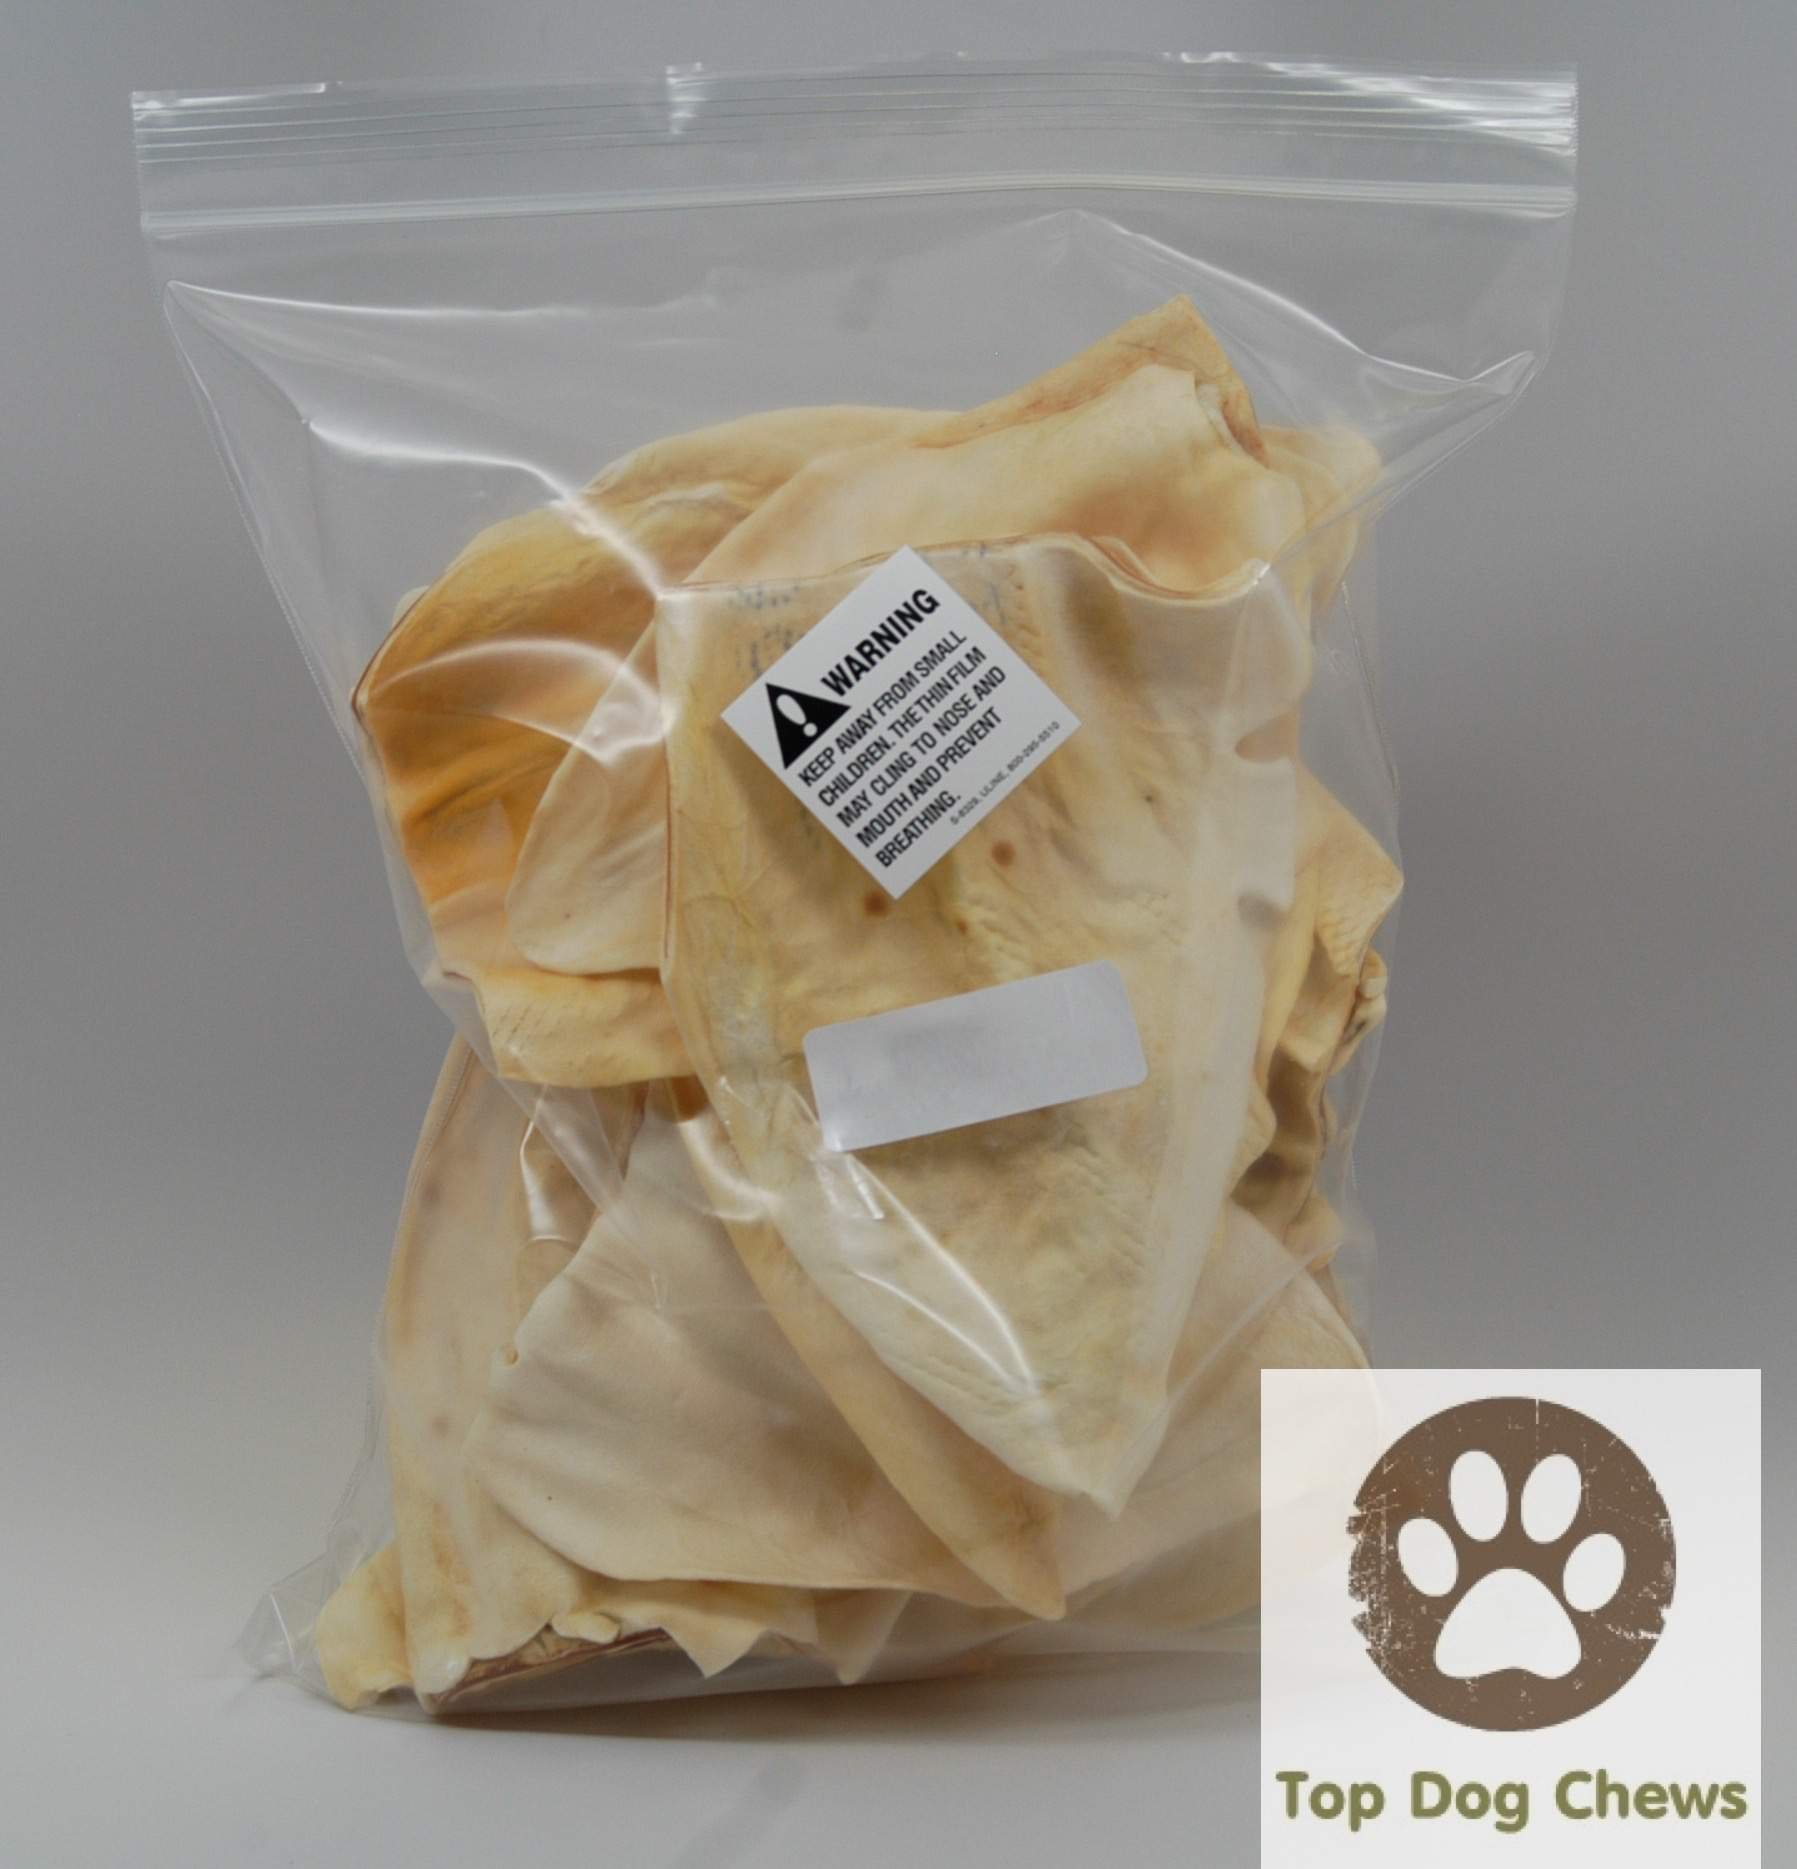 Top Dog Chews Cow Ears Jumbo Thick 100 Pack - Huge No Additives, Chemicals or Hormones - USDA/FDA Inspected by Top Dog Chews (Image #1)